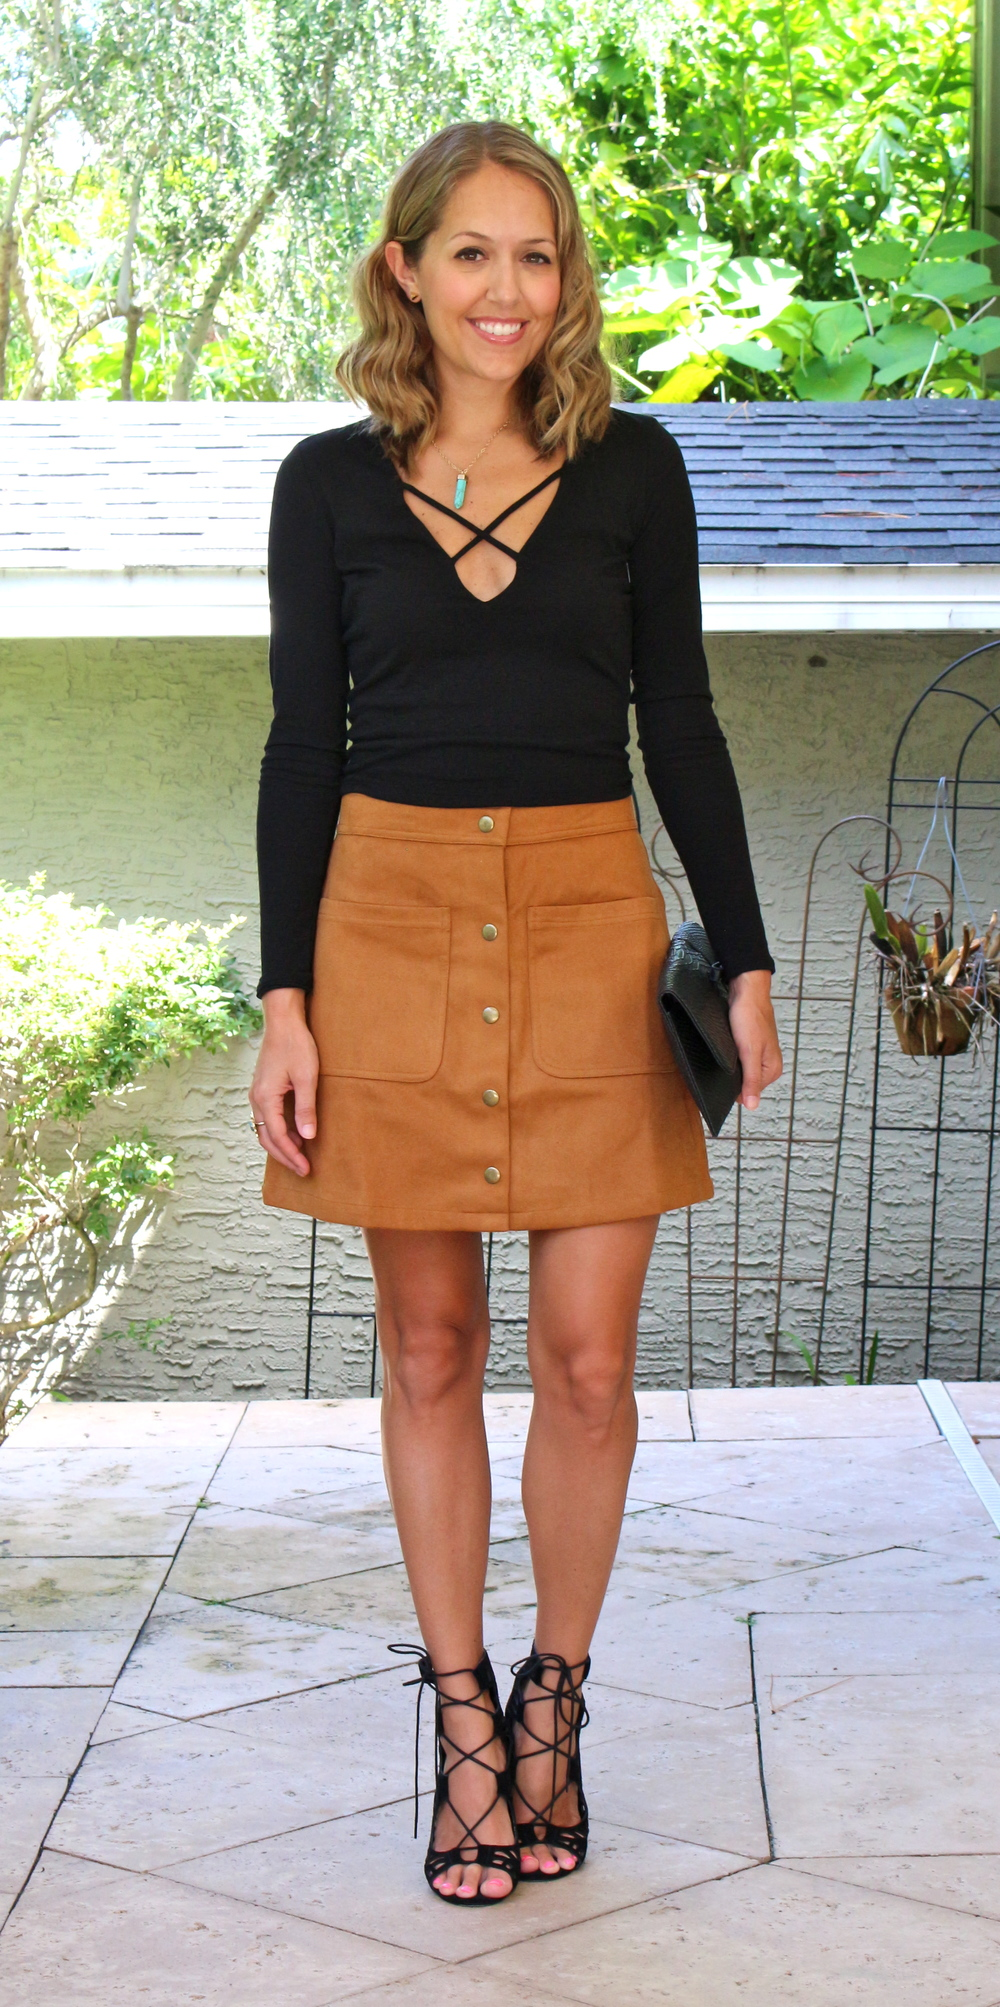 Criss cross top $10 and suede skirt $33